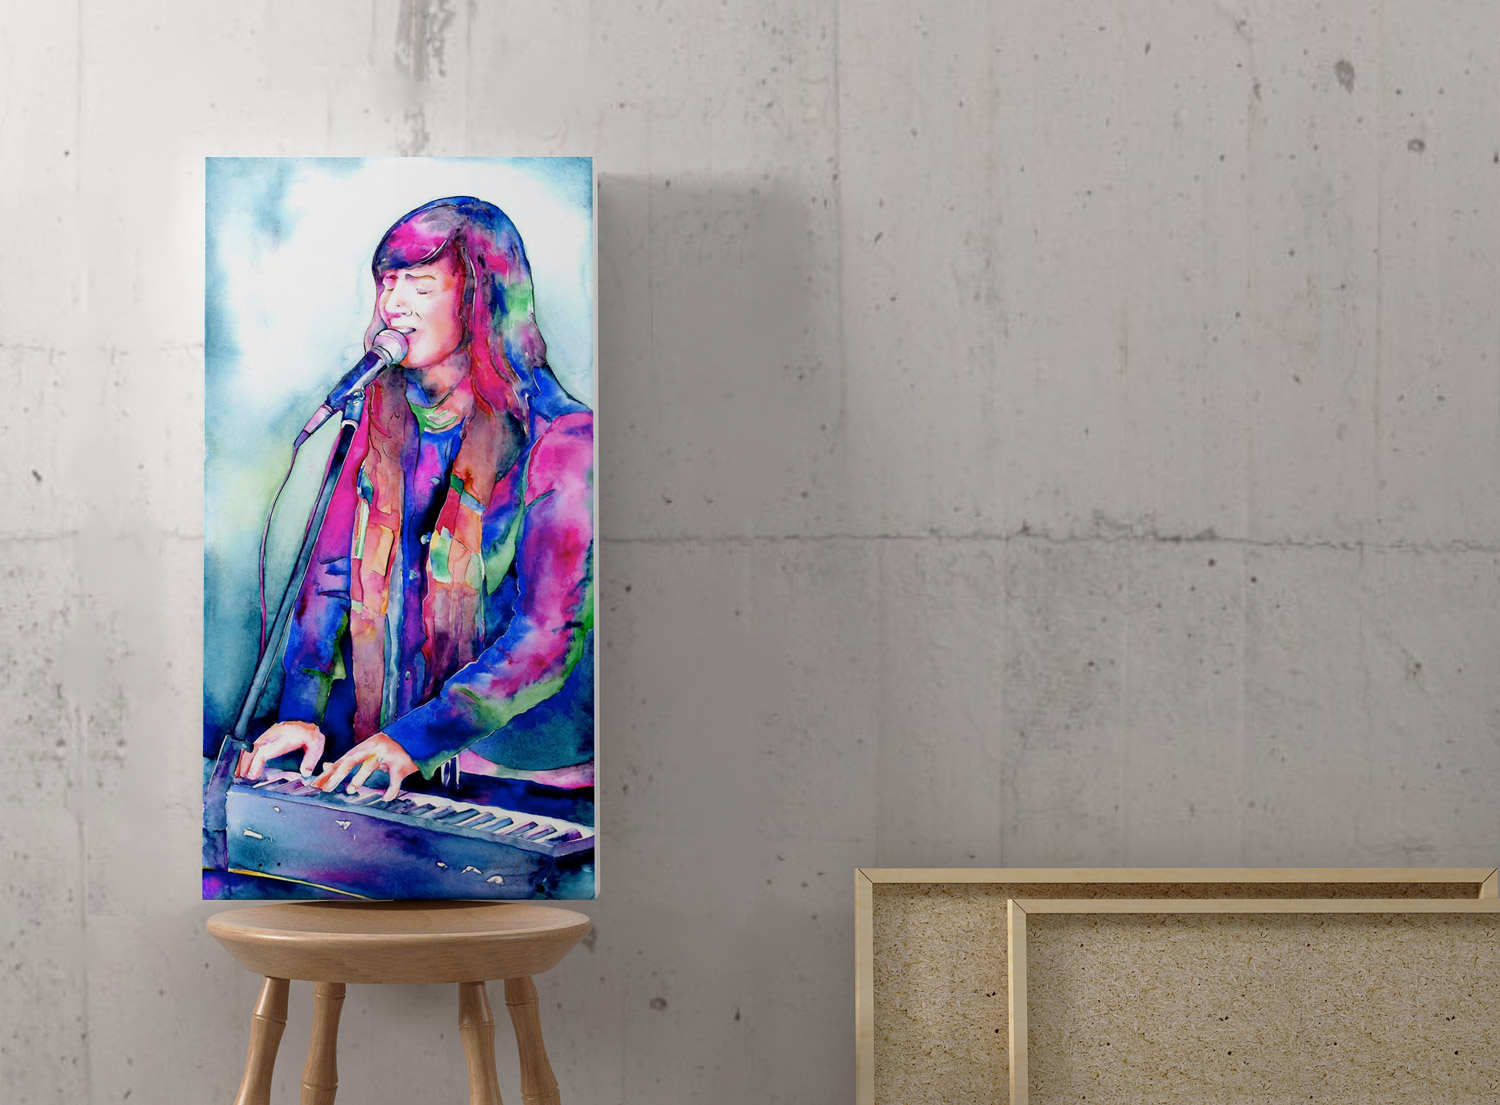 colorful watercolor painting of a singer